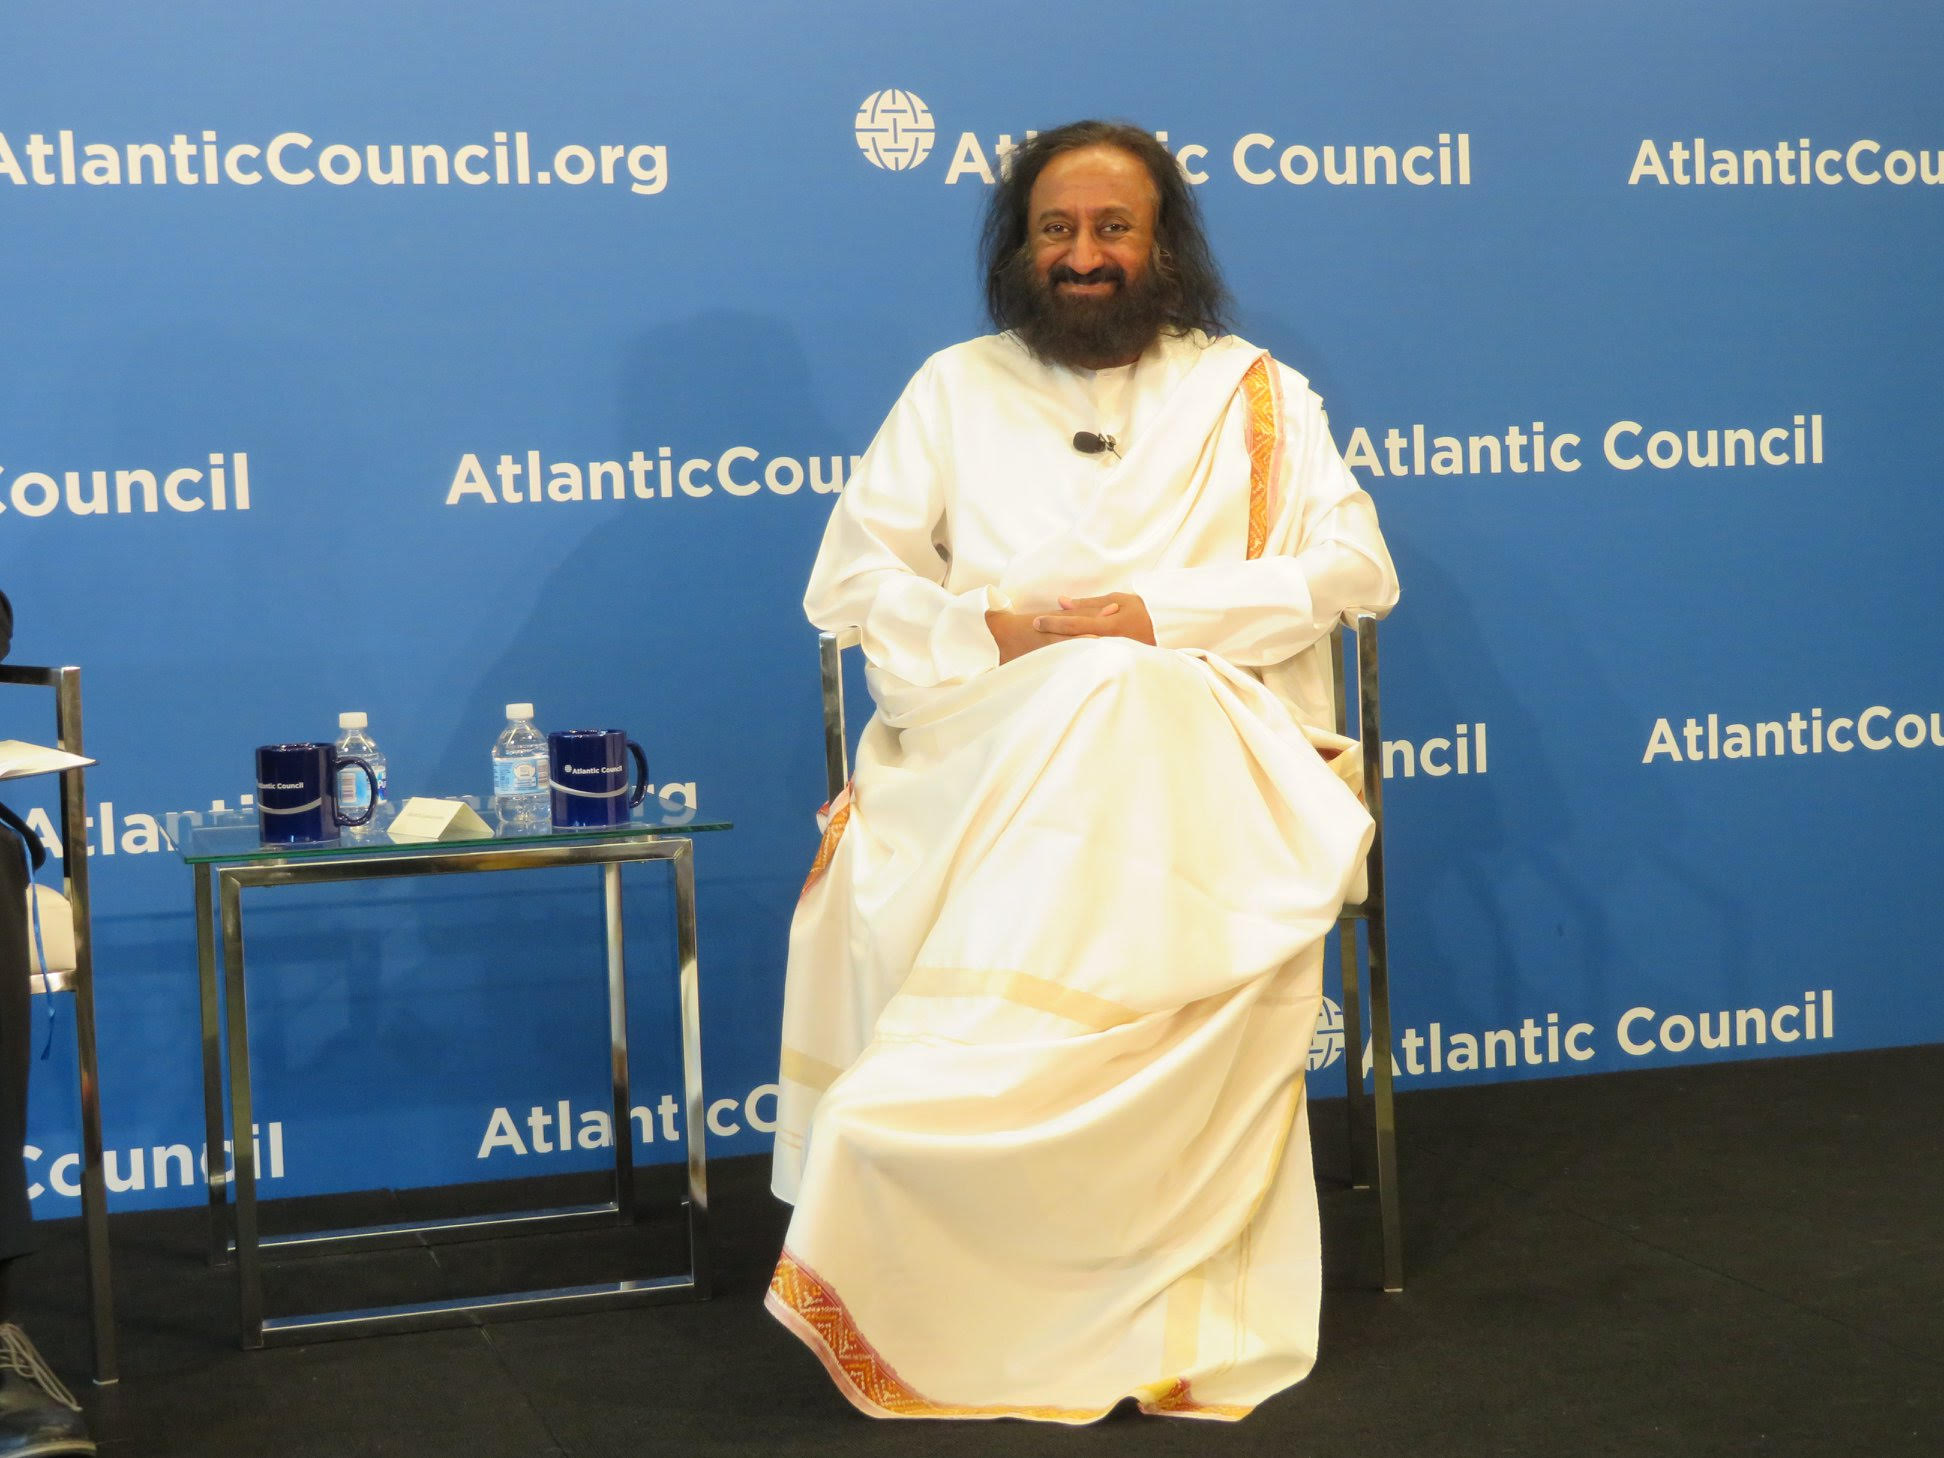 Teach kids the importance of non-violence: Sri Sri Ravi Shankar